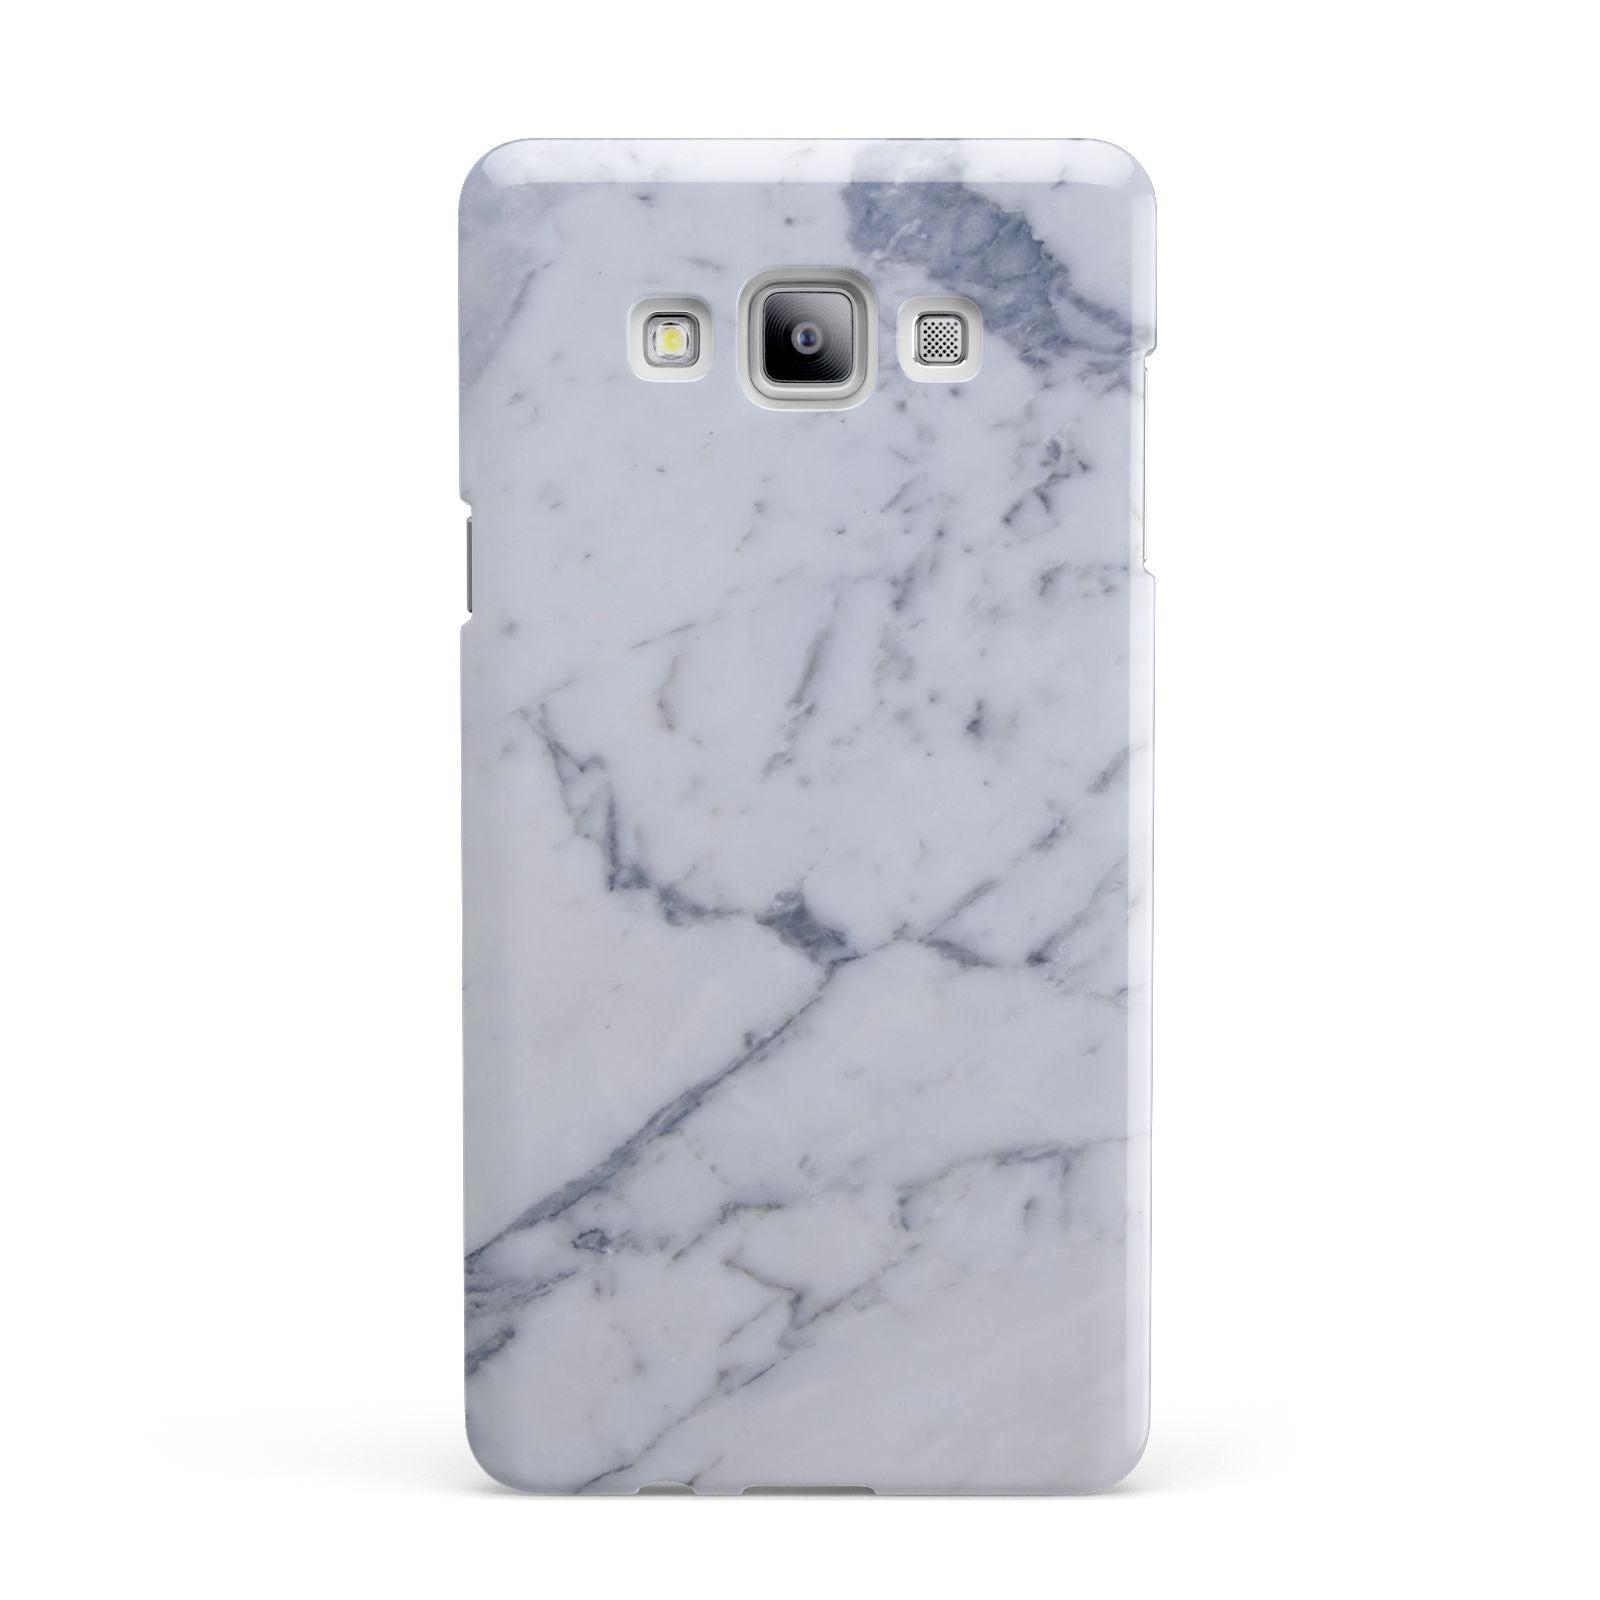 Faux Marble Grey White Samsung Galaxy A7 2015 Case